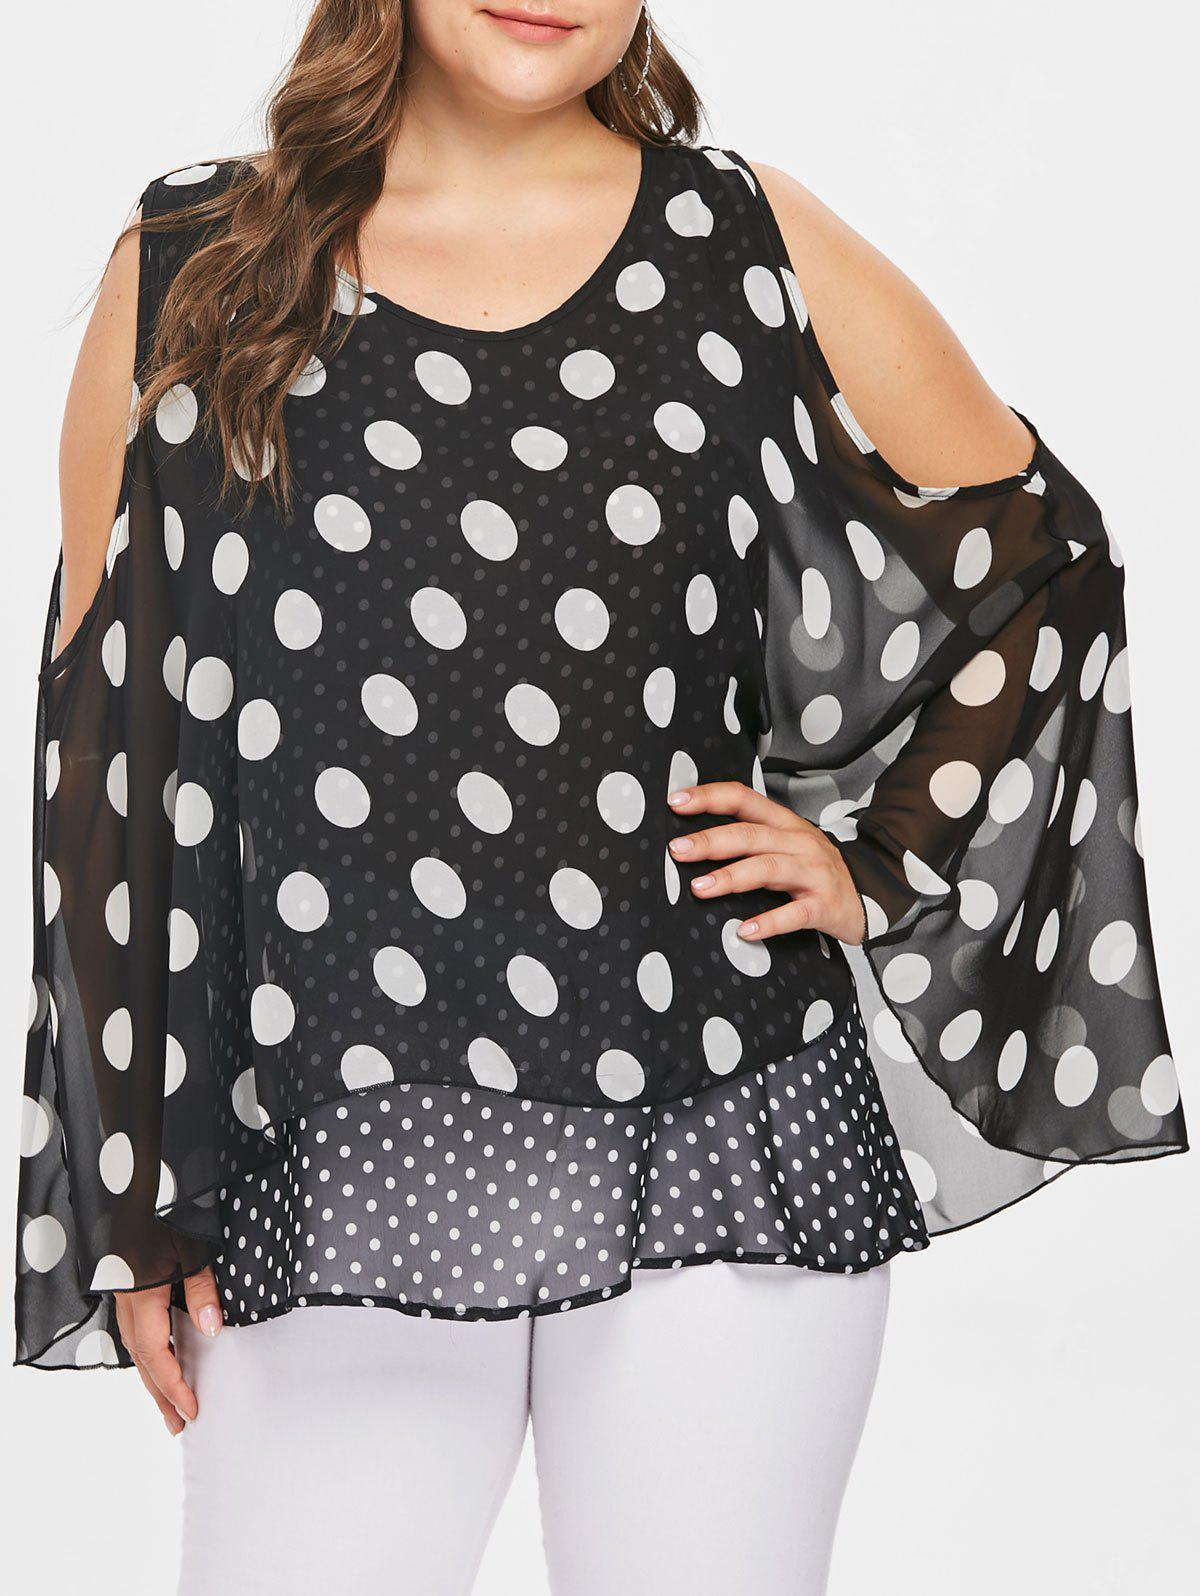 New Cold Shoulder Plus Size Overlay Polka Dot Blouse